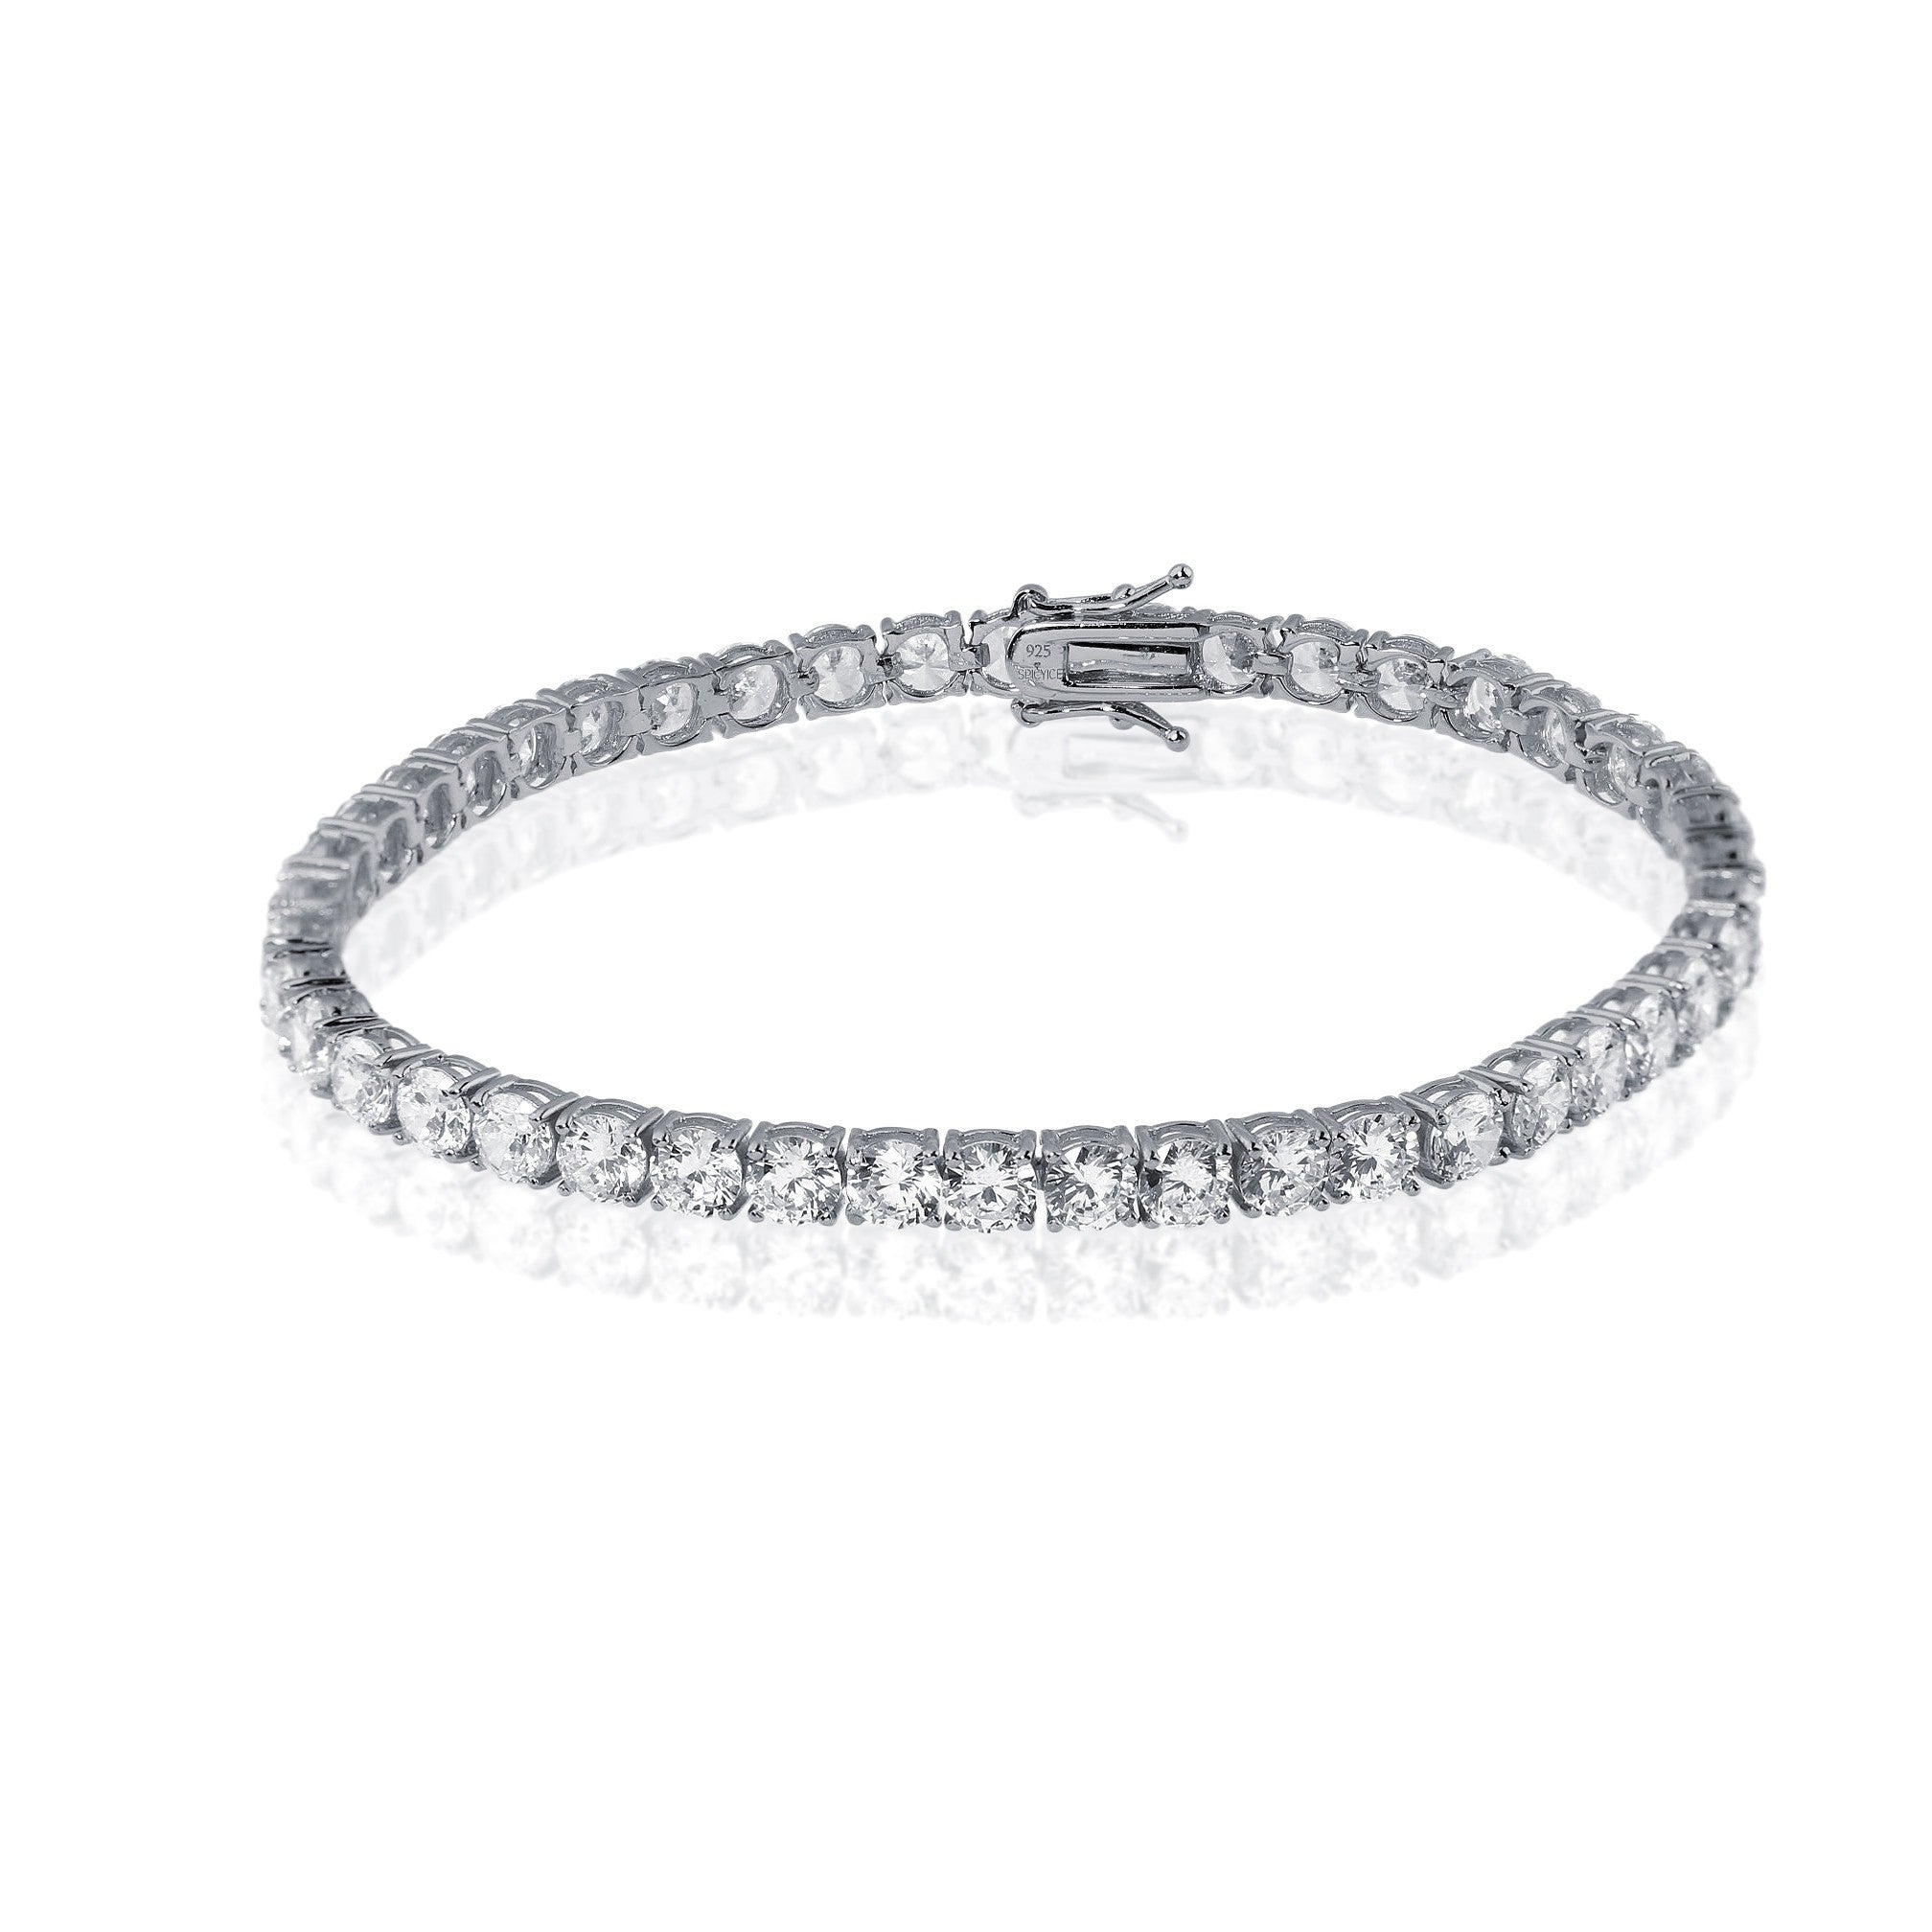 Bracelet - 5mm Single Row Tennis Bracelet In Platinum Rhodium